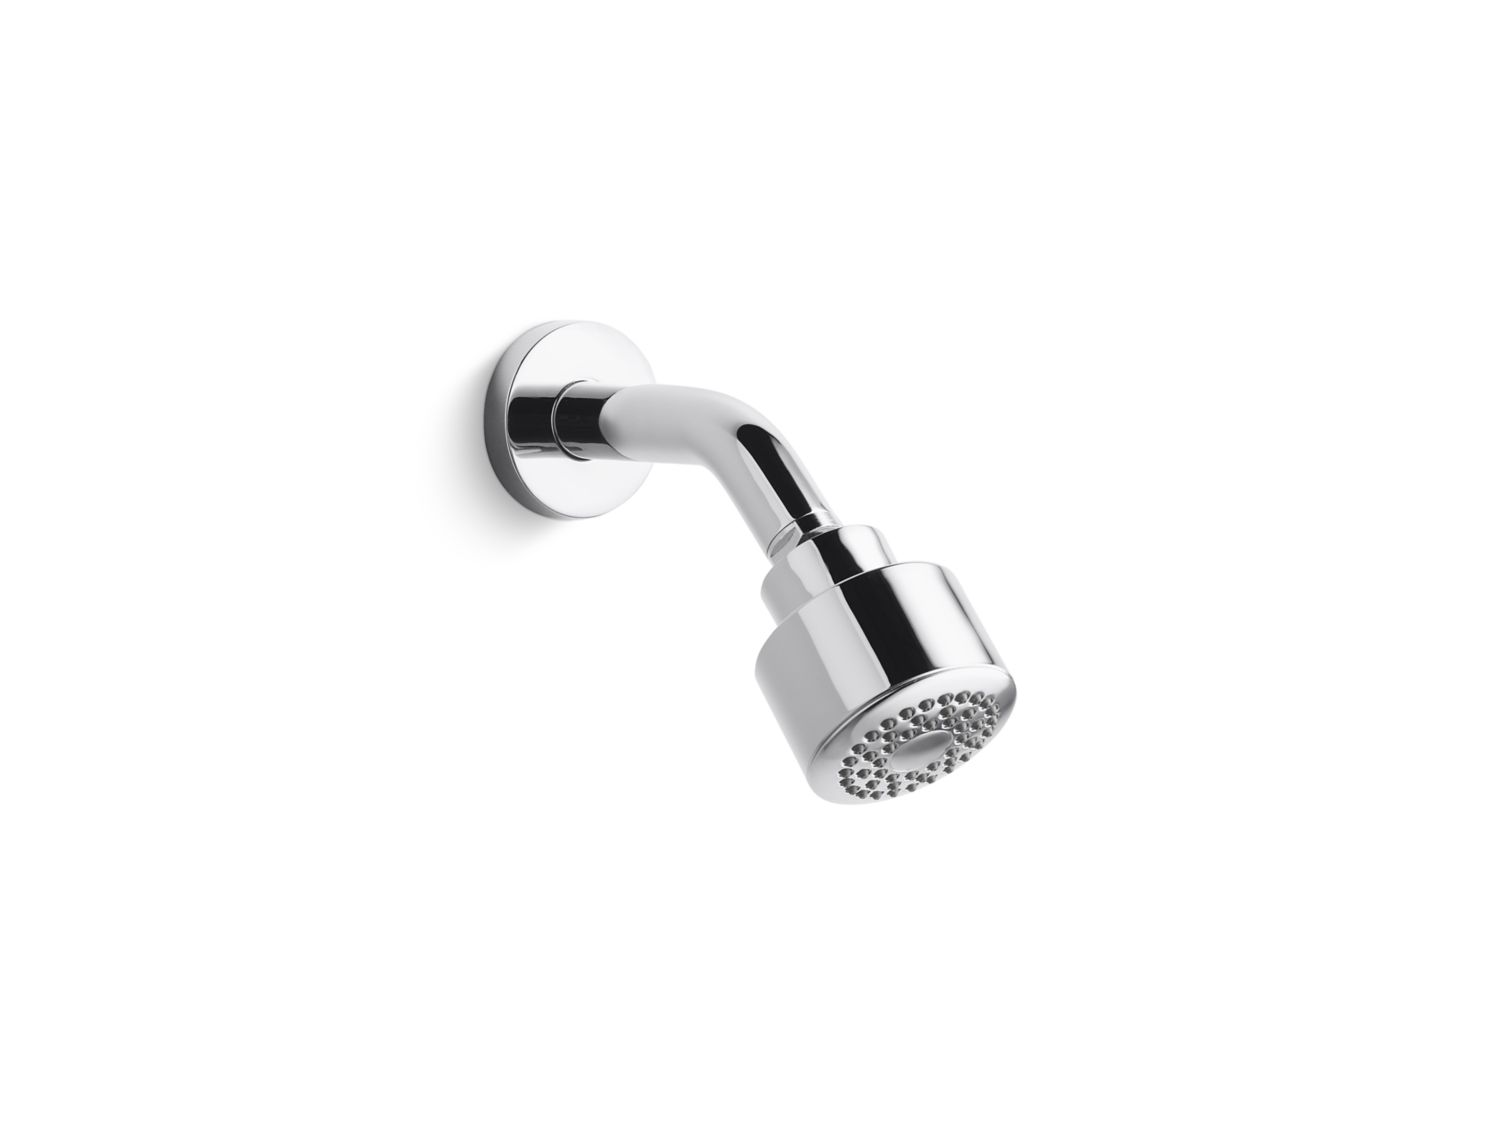 One Showerhead with Arm   P24771-00   Showerheads   Showering ...